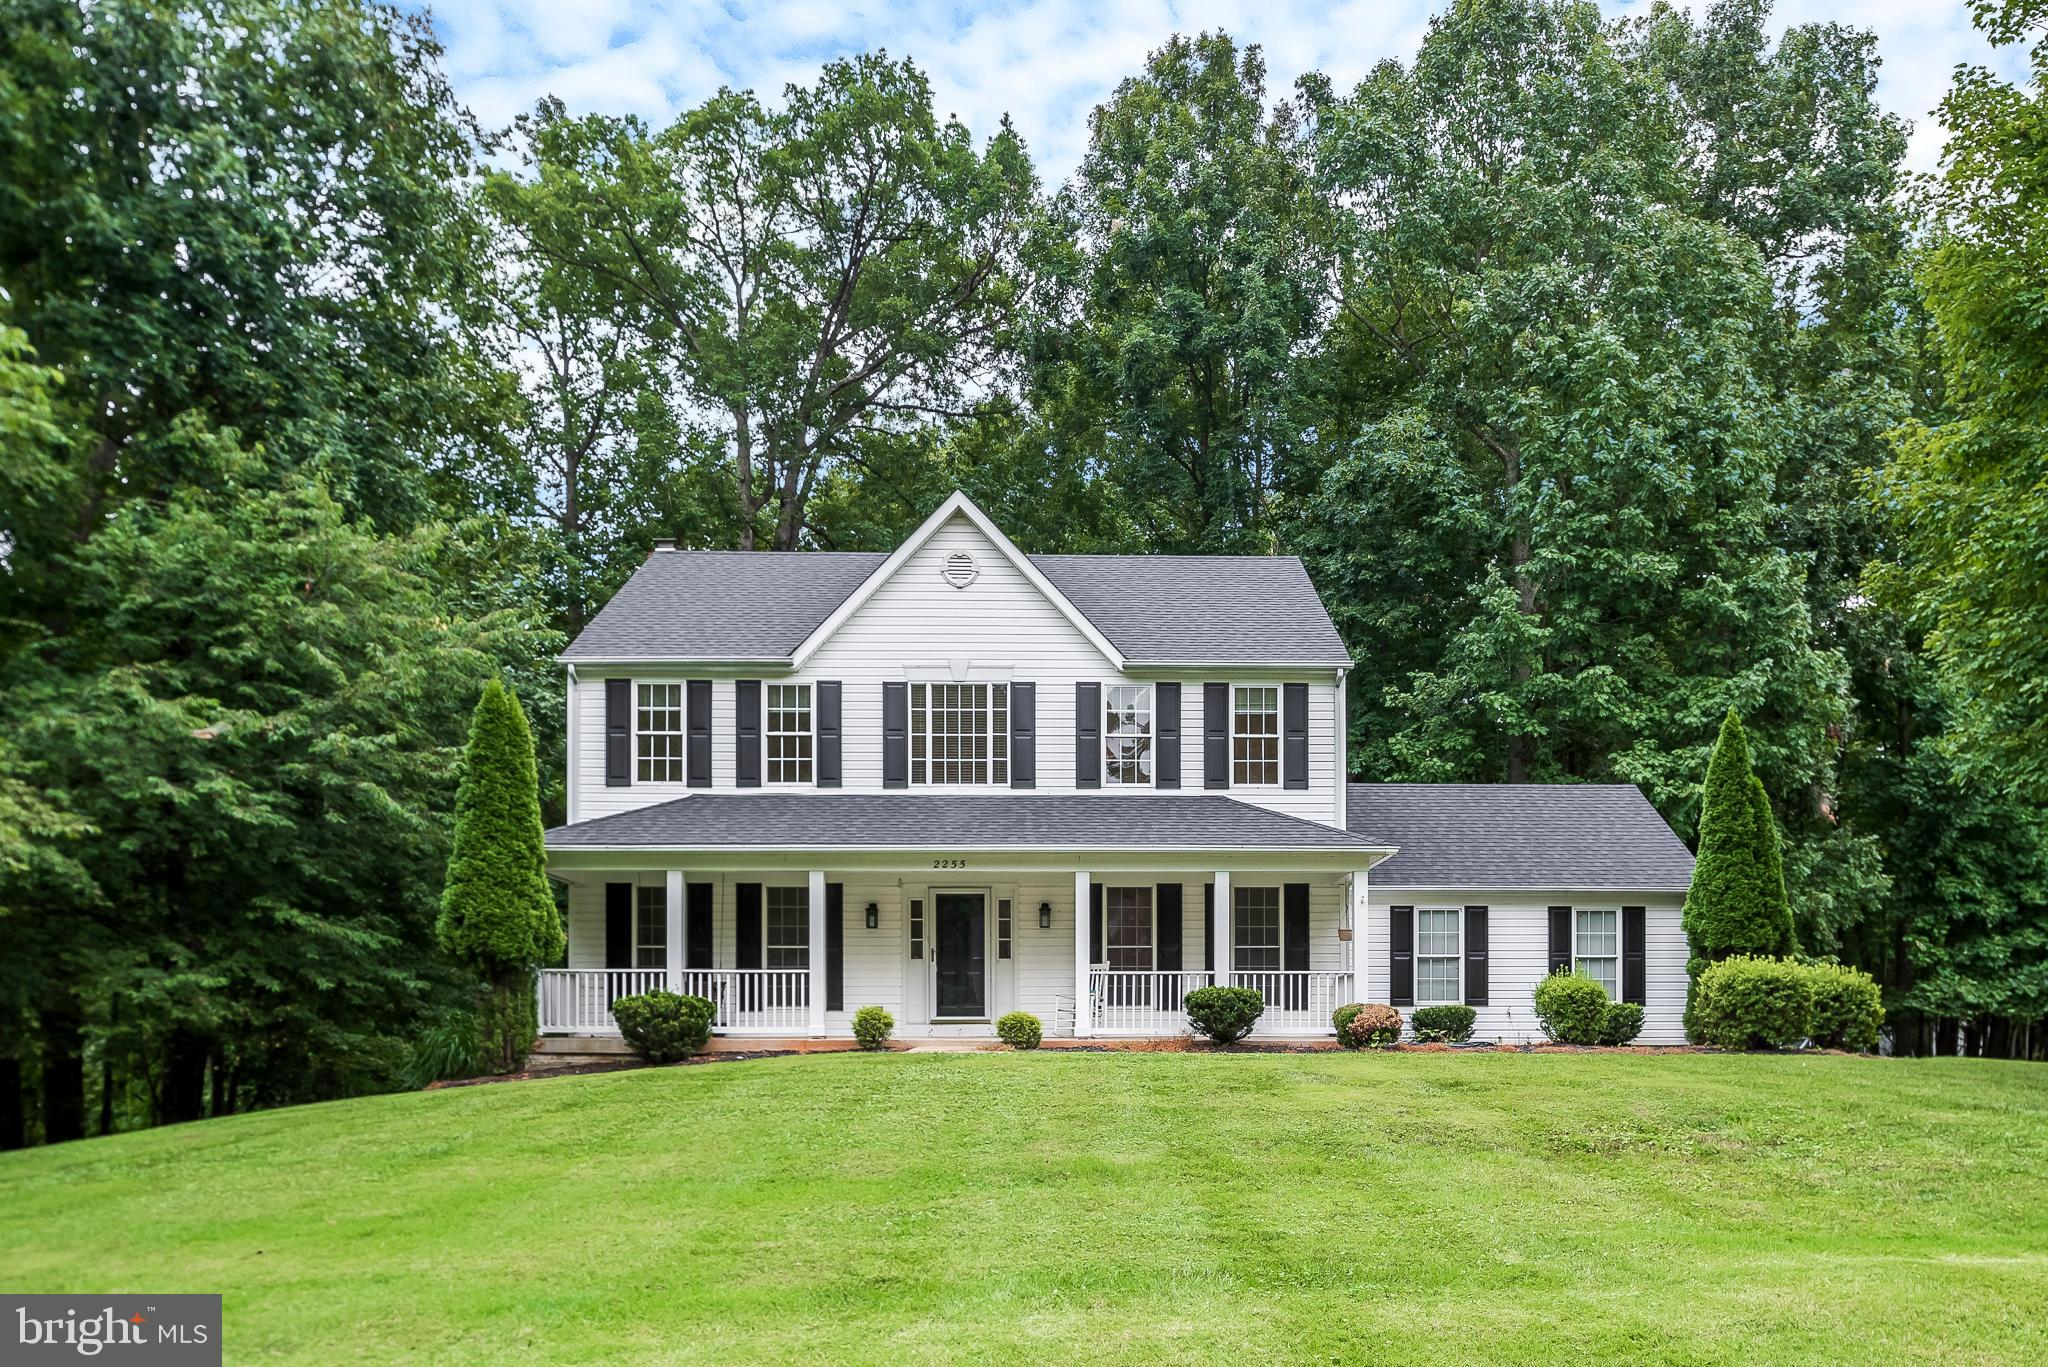 2255 FOREST HILL ROAD, MARRIOTTSVILLE, MD 21104